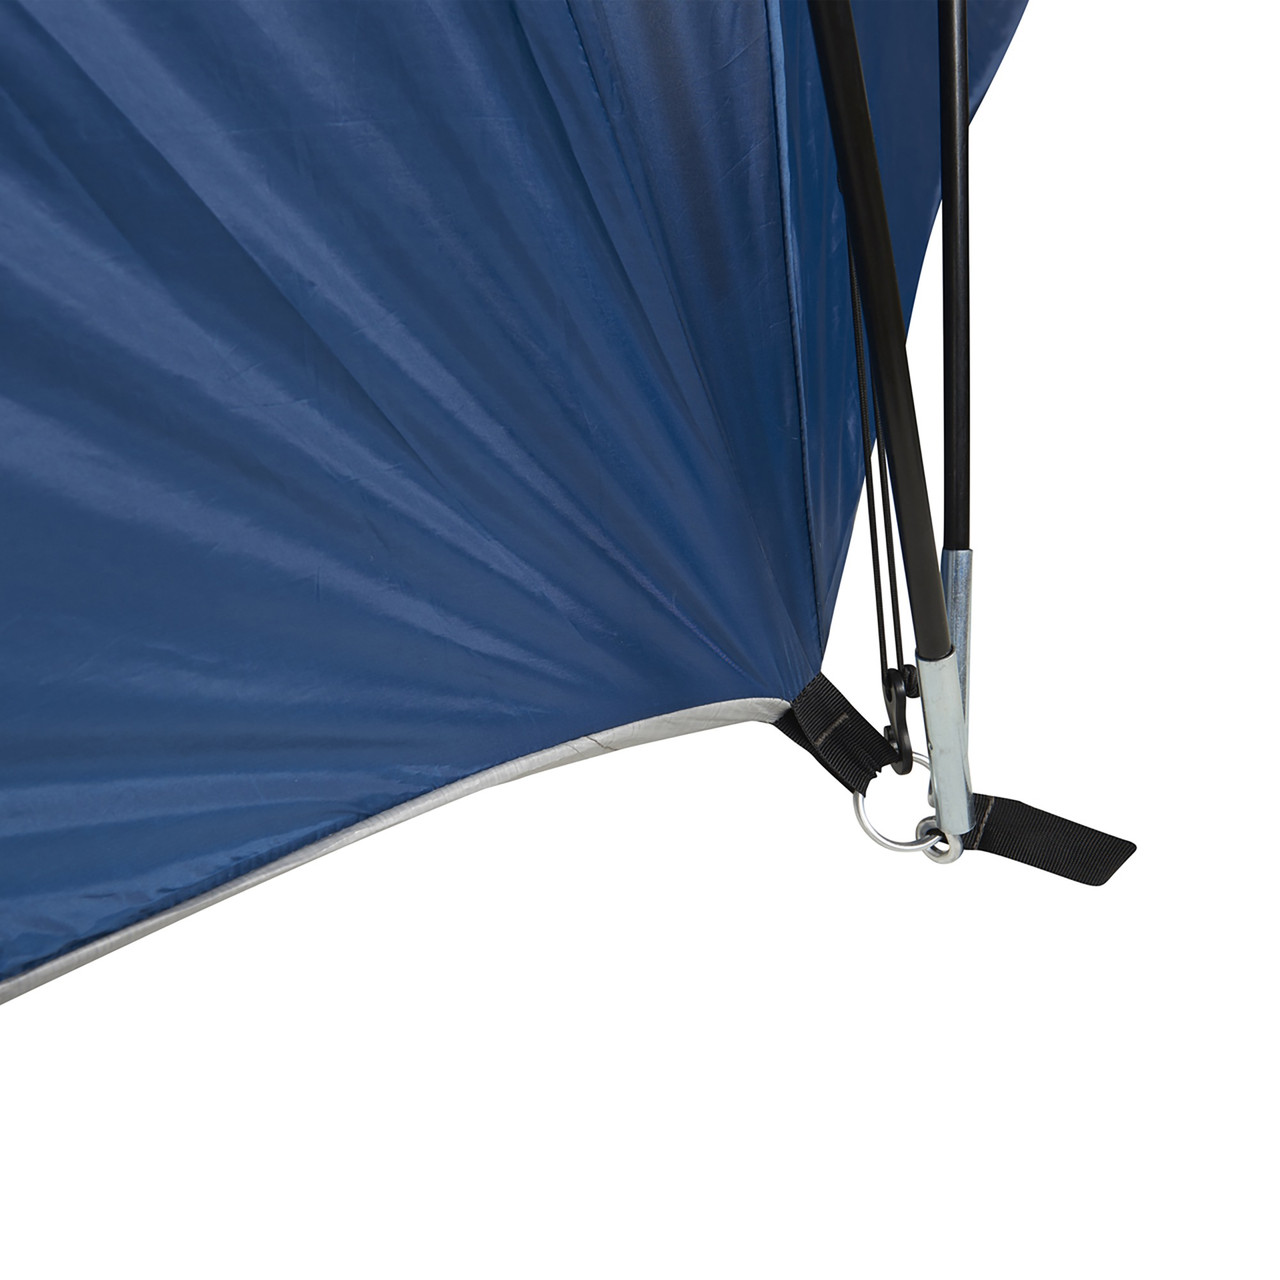 Wenzel Pinyon 10 Person Dome Tent, blue/white, showing tent pole inserted into lower corner of tent